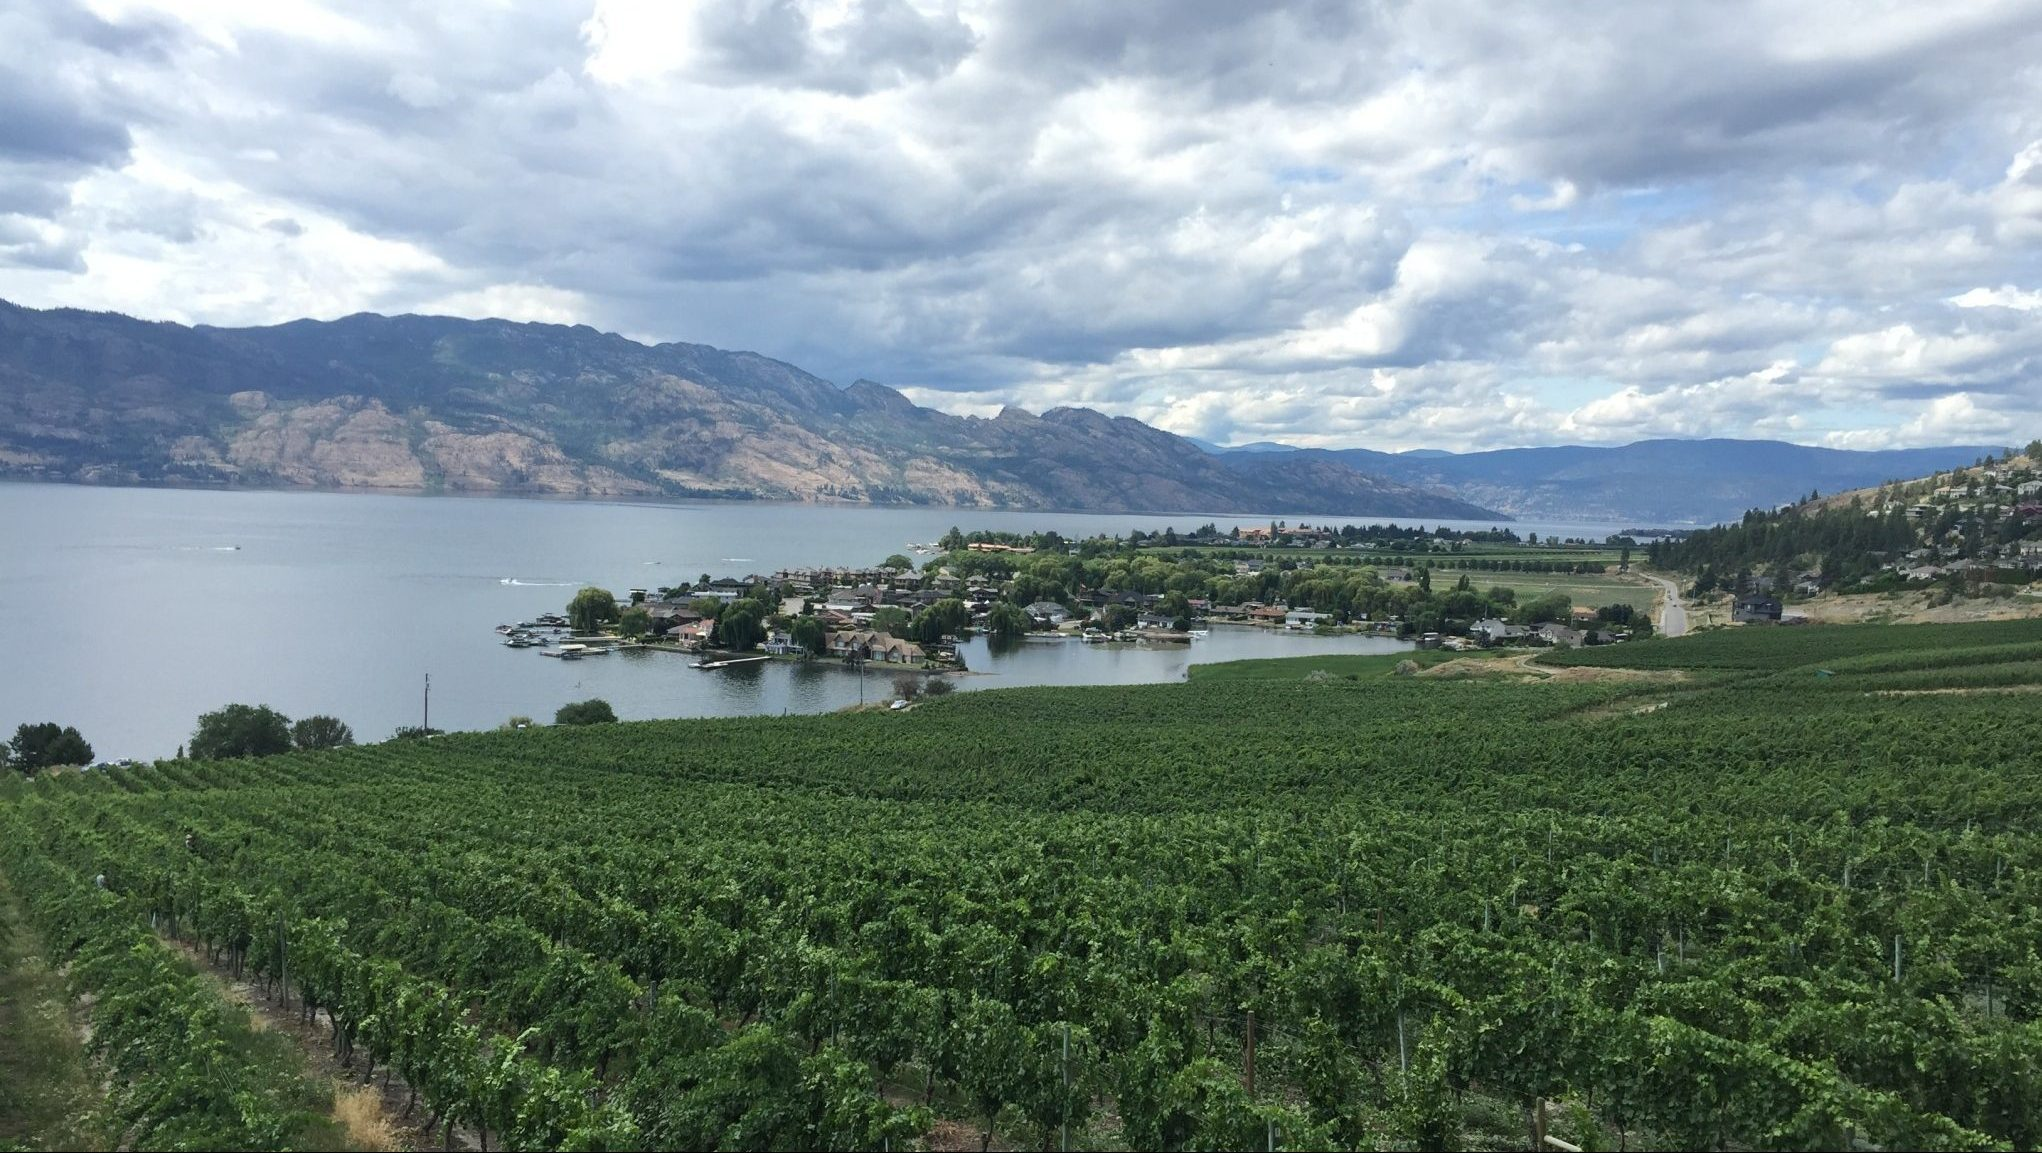 The view of Quails' Gate's vineyard in West Kelowna.